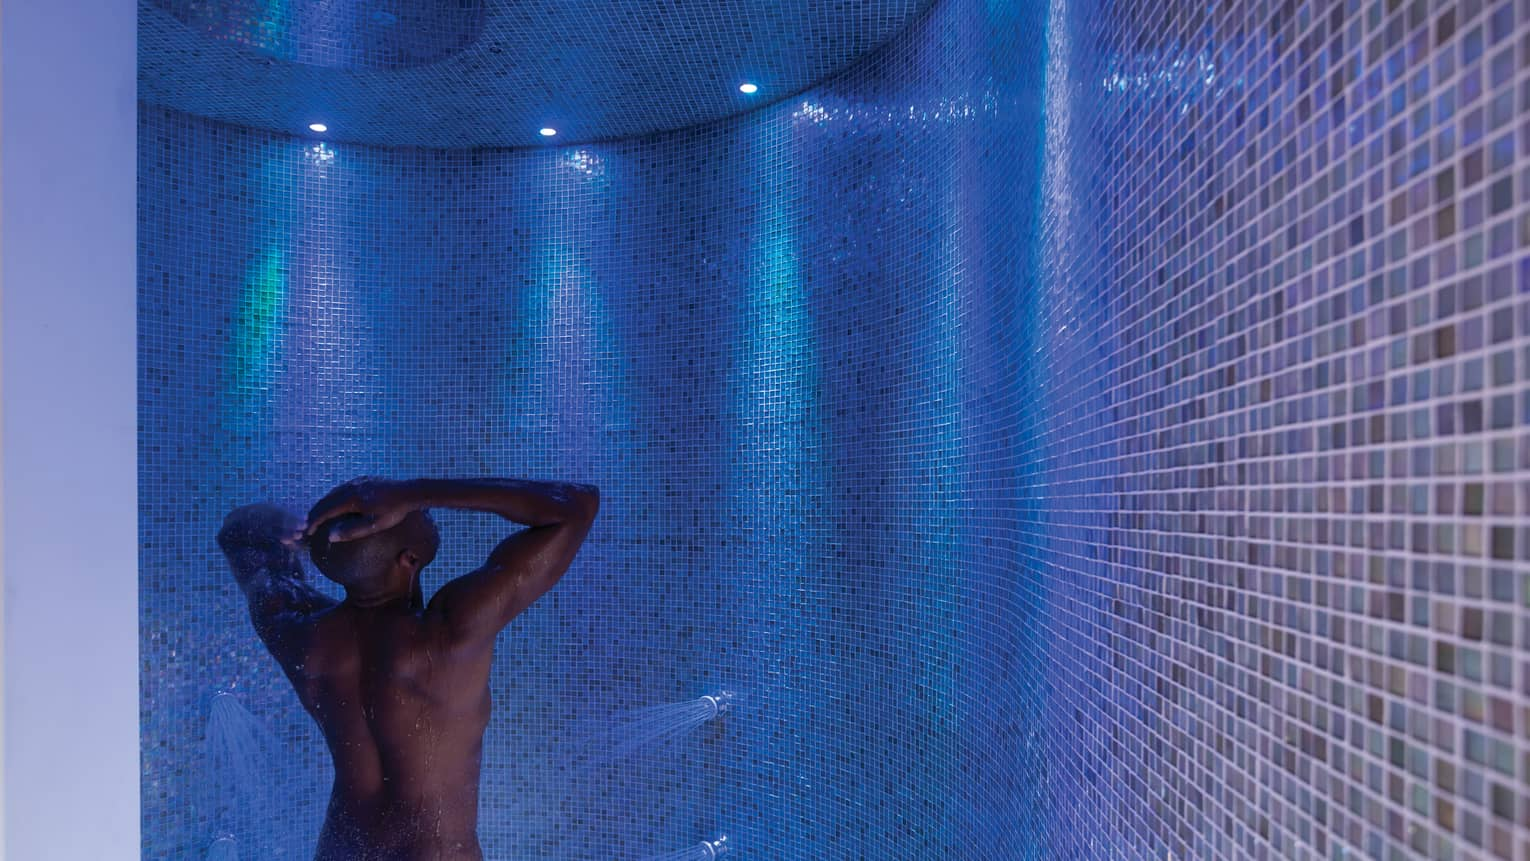 Man rinses off in tile spa shower under blue, purple lights